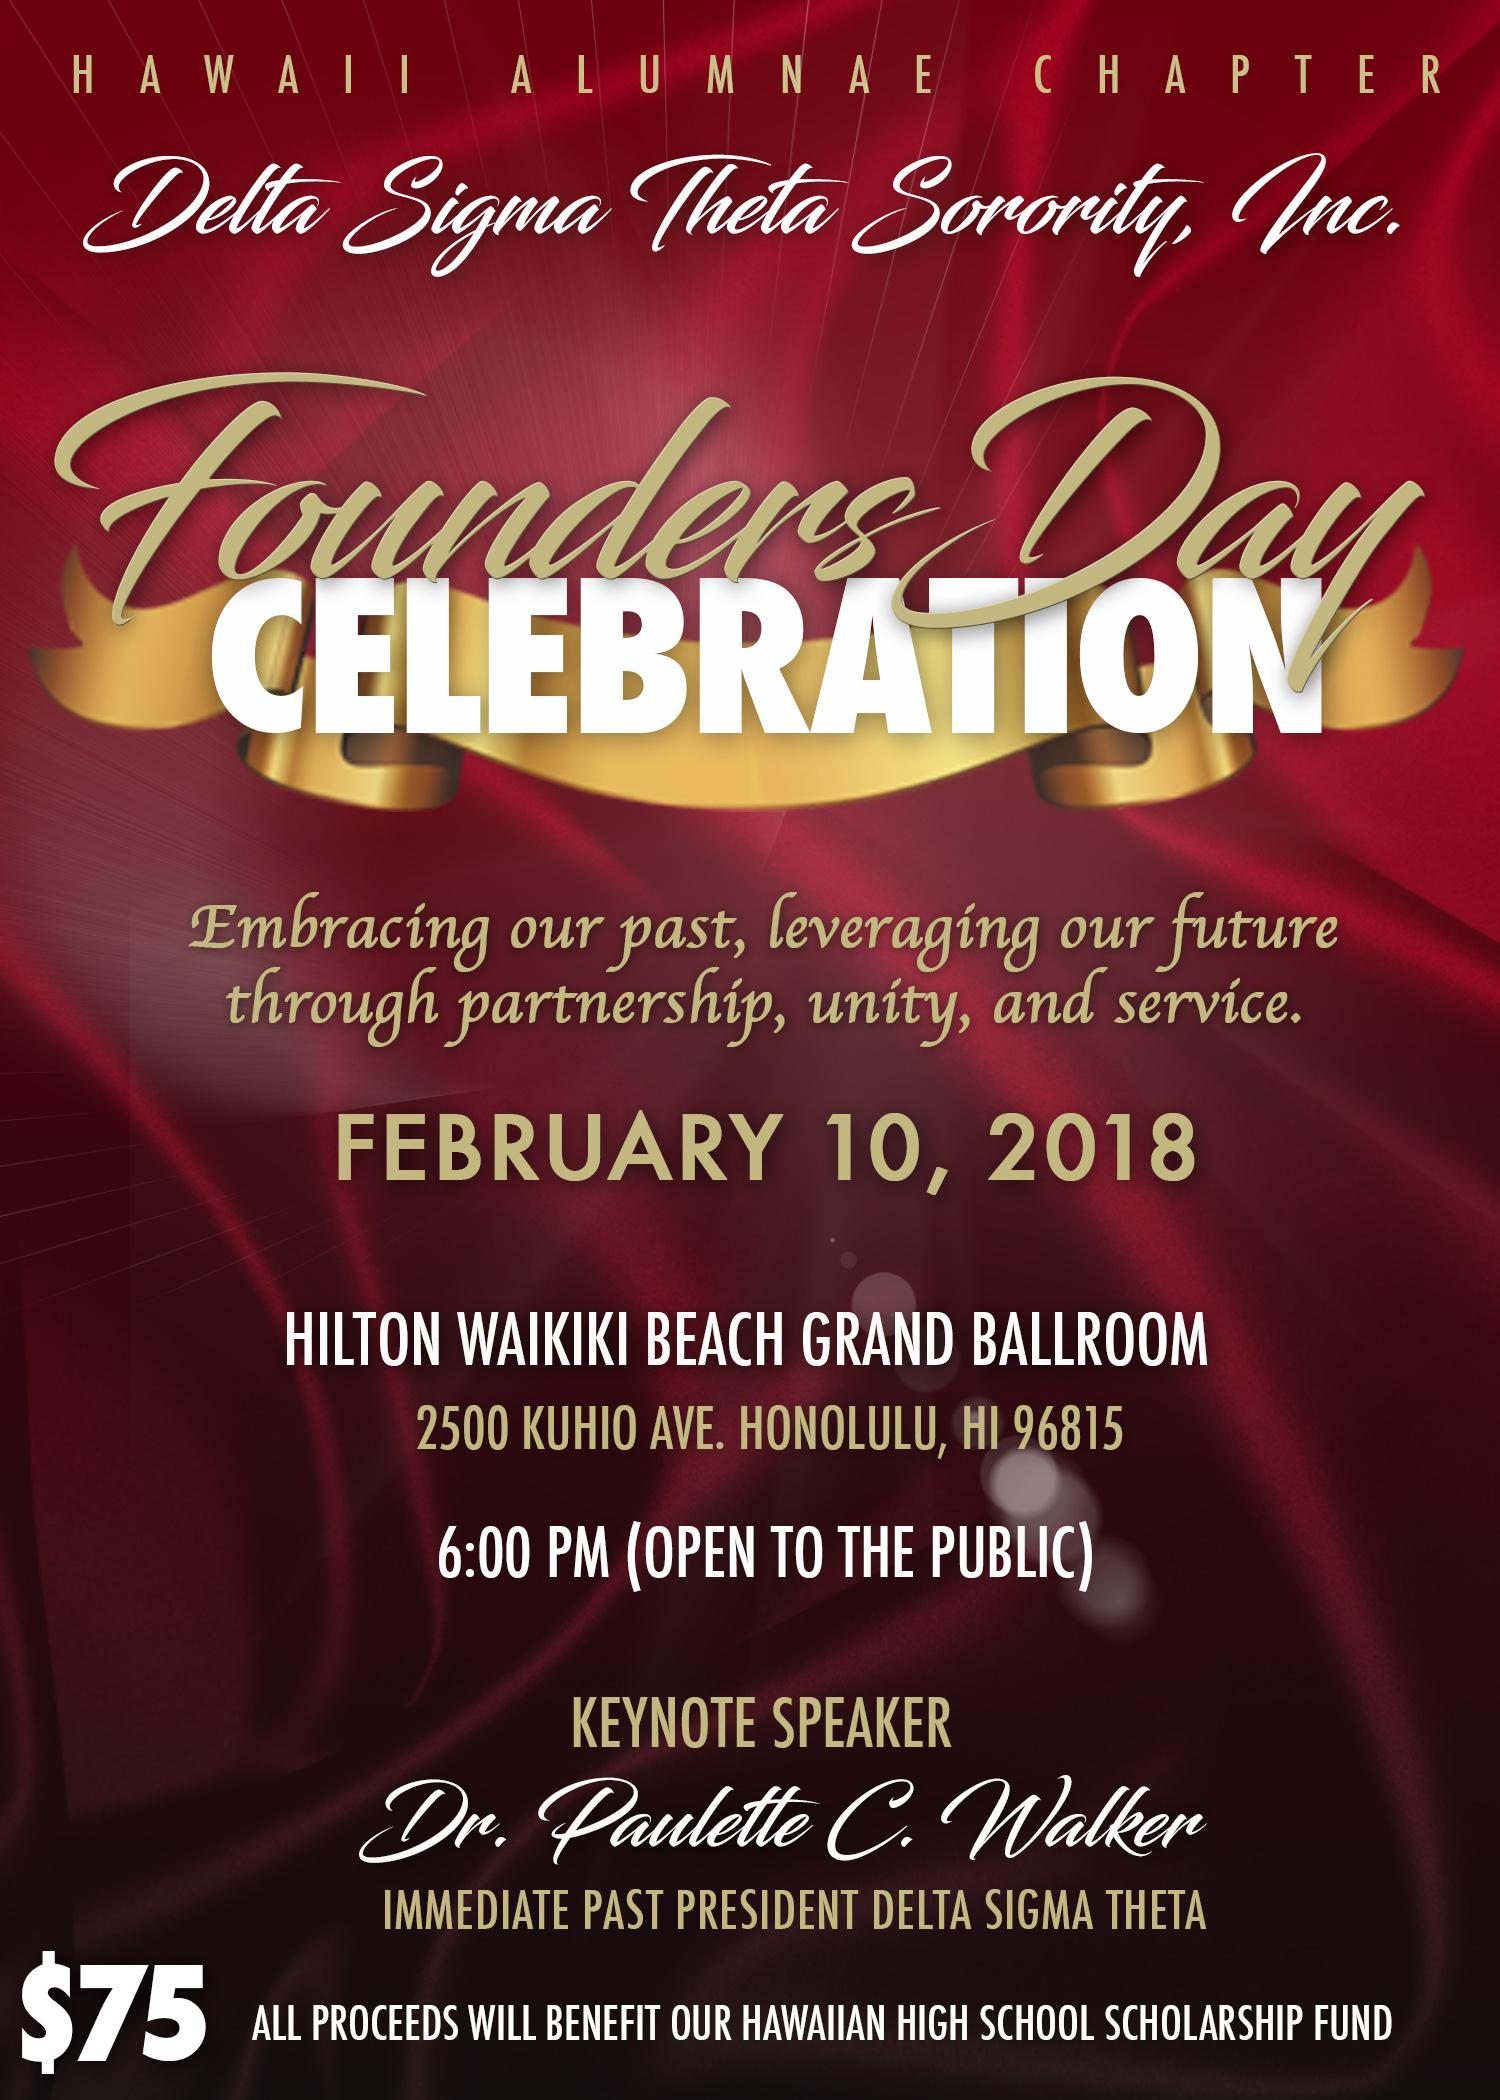 Founders Day Chapter 35th Anniversary Celebration 10 Feb 2018